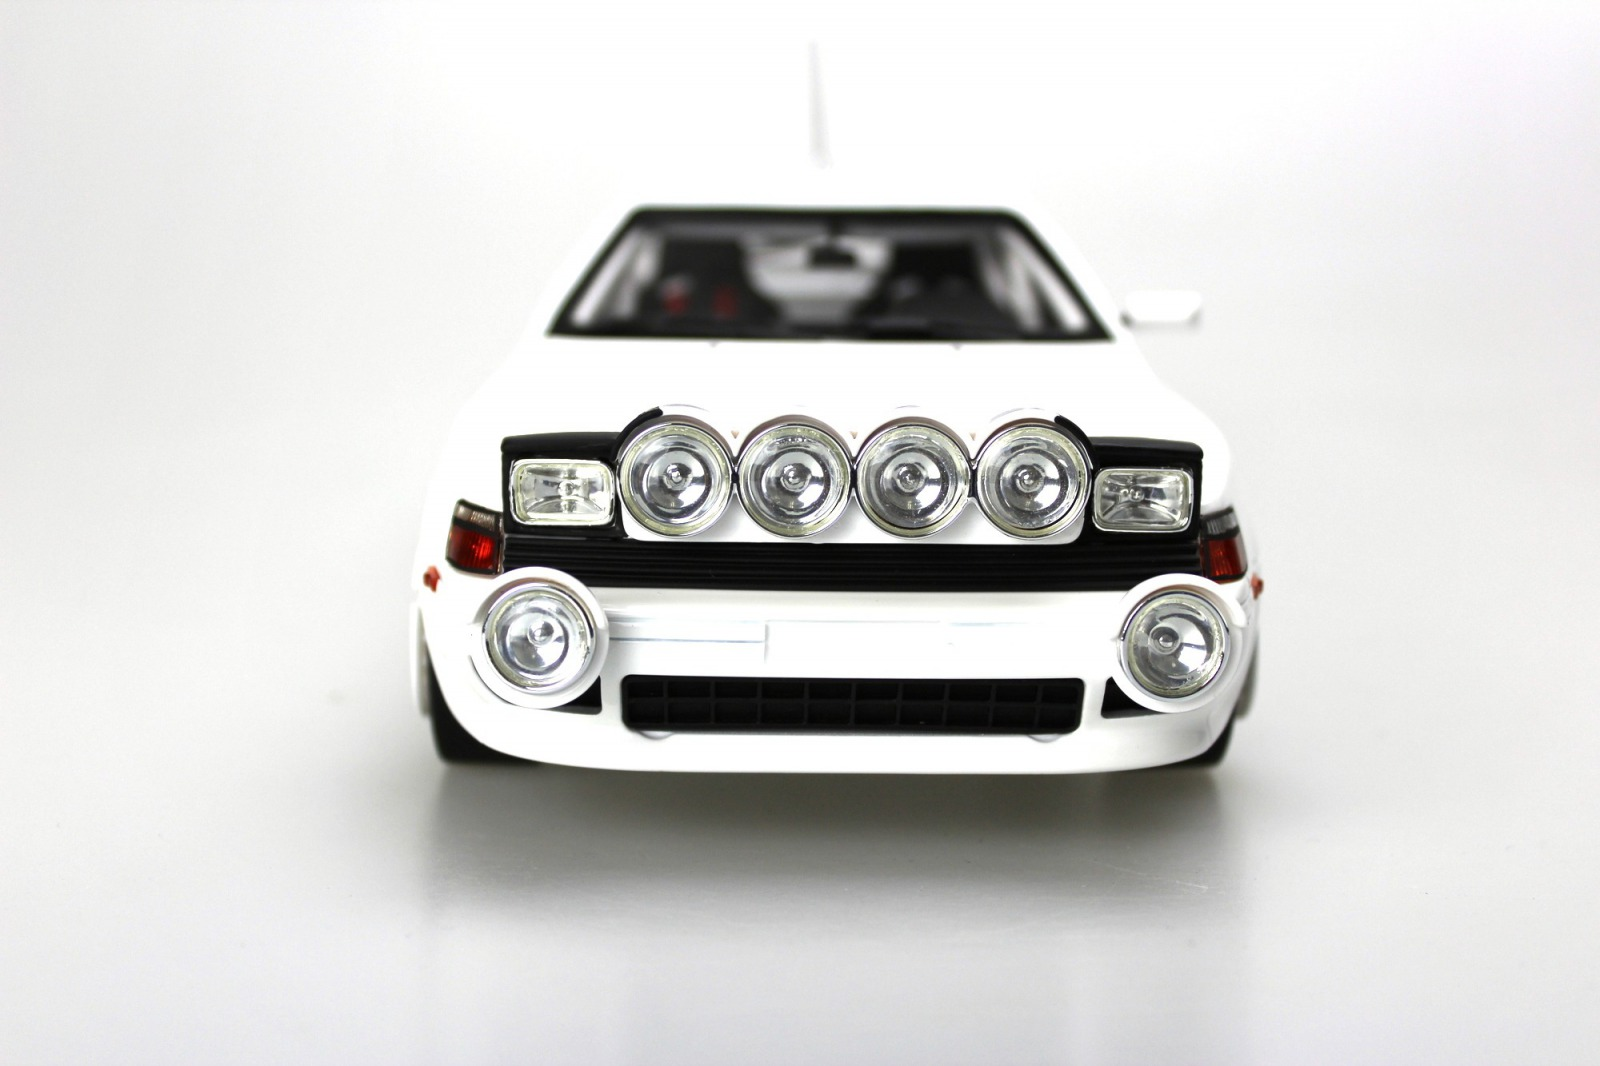 Topmarques トップマルケス 1:18 1991年 トヨタ セリカ GT4 ST165 ホワイト1:18 Top Marques Toyota Celica St 165 1991 NEW